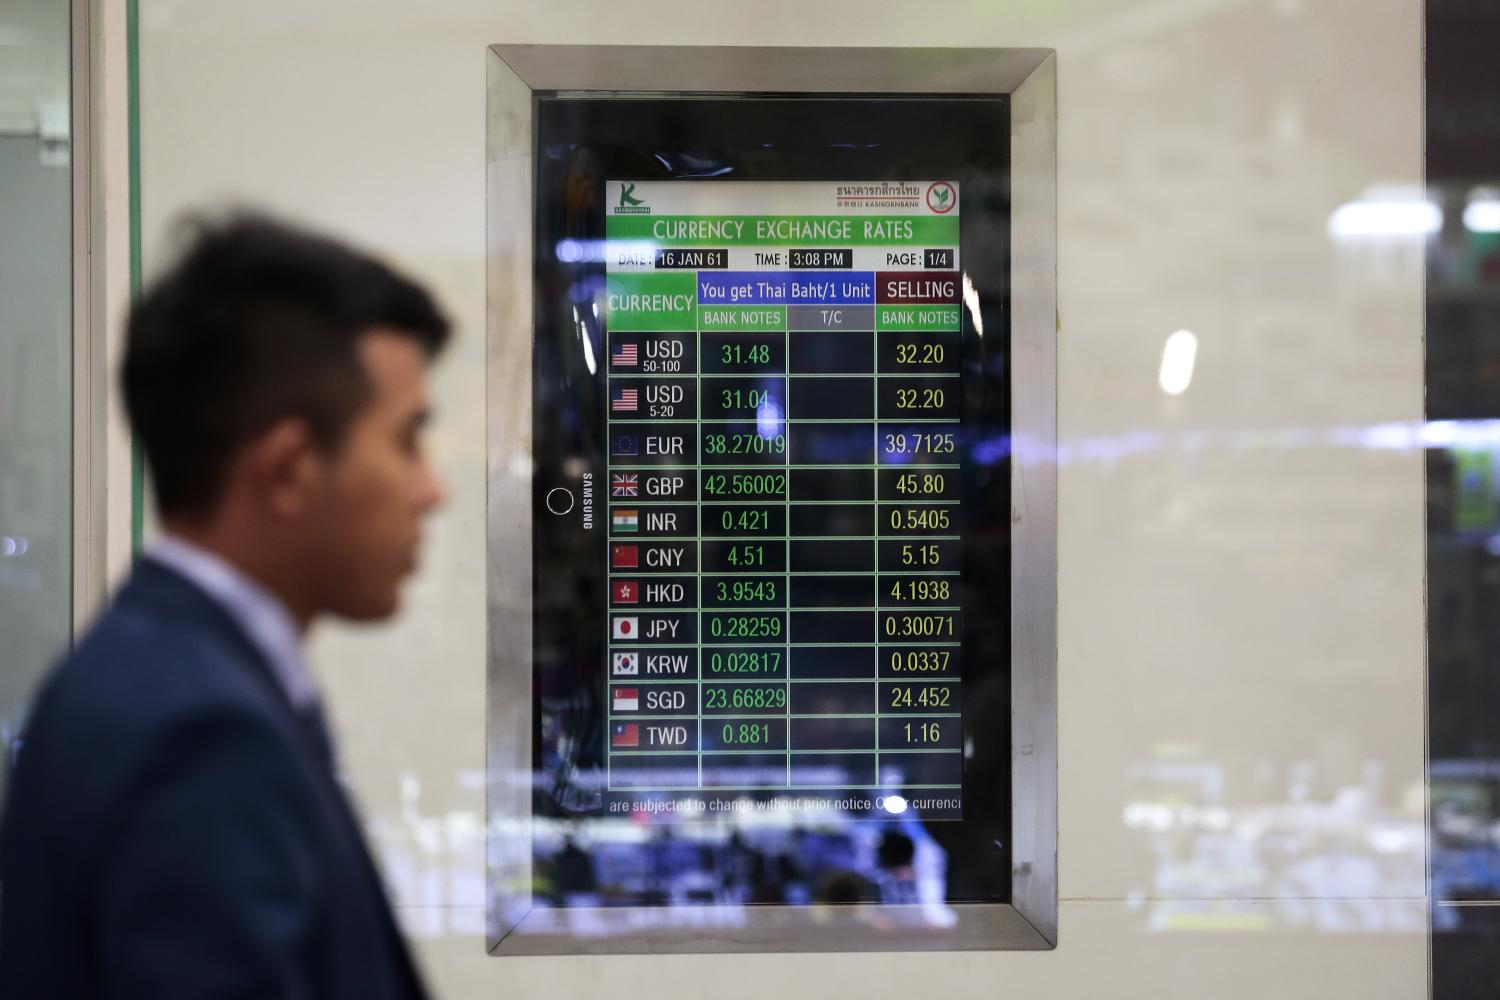 A man walks past a bank's currency exchange board in the capital. (Photo by Patipat Janthong)